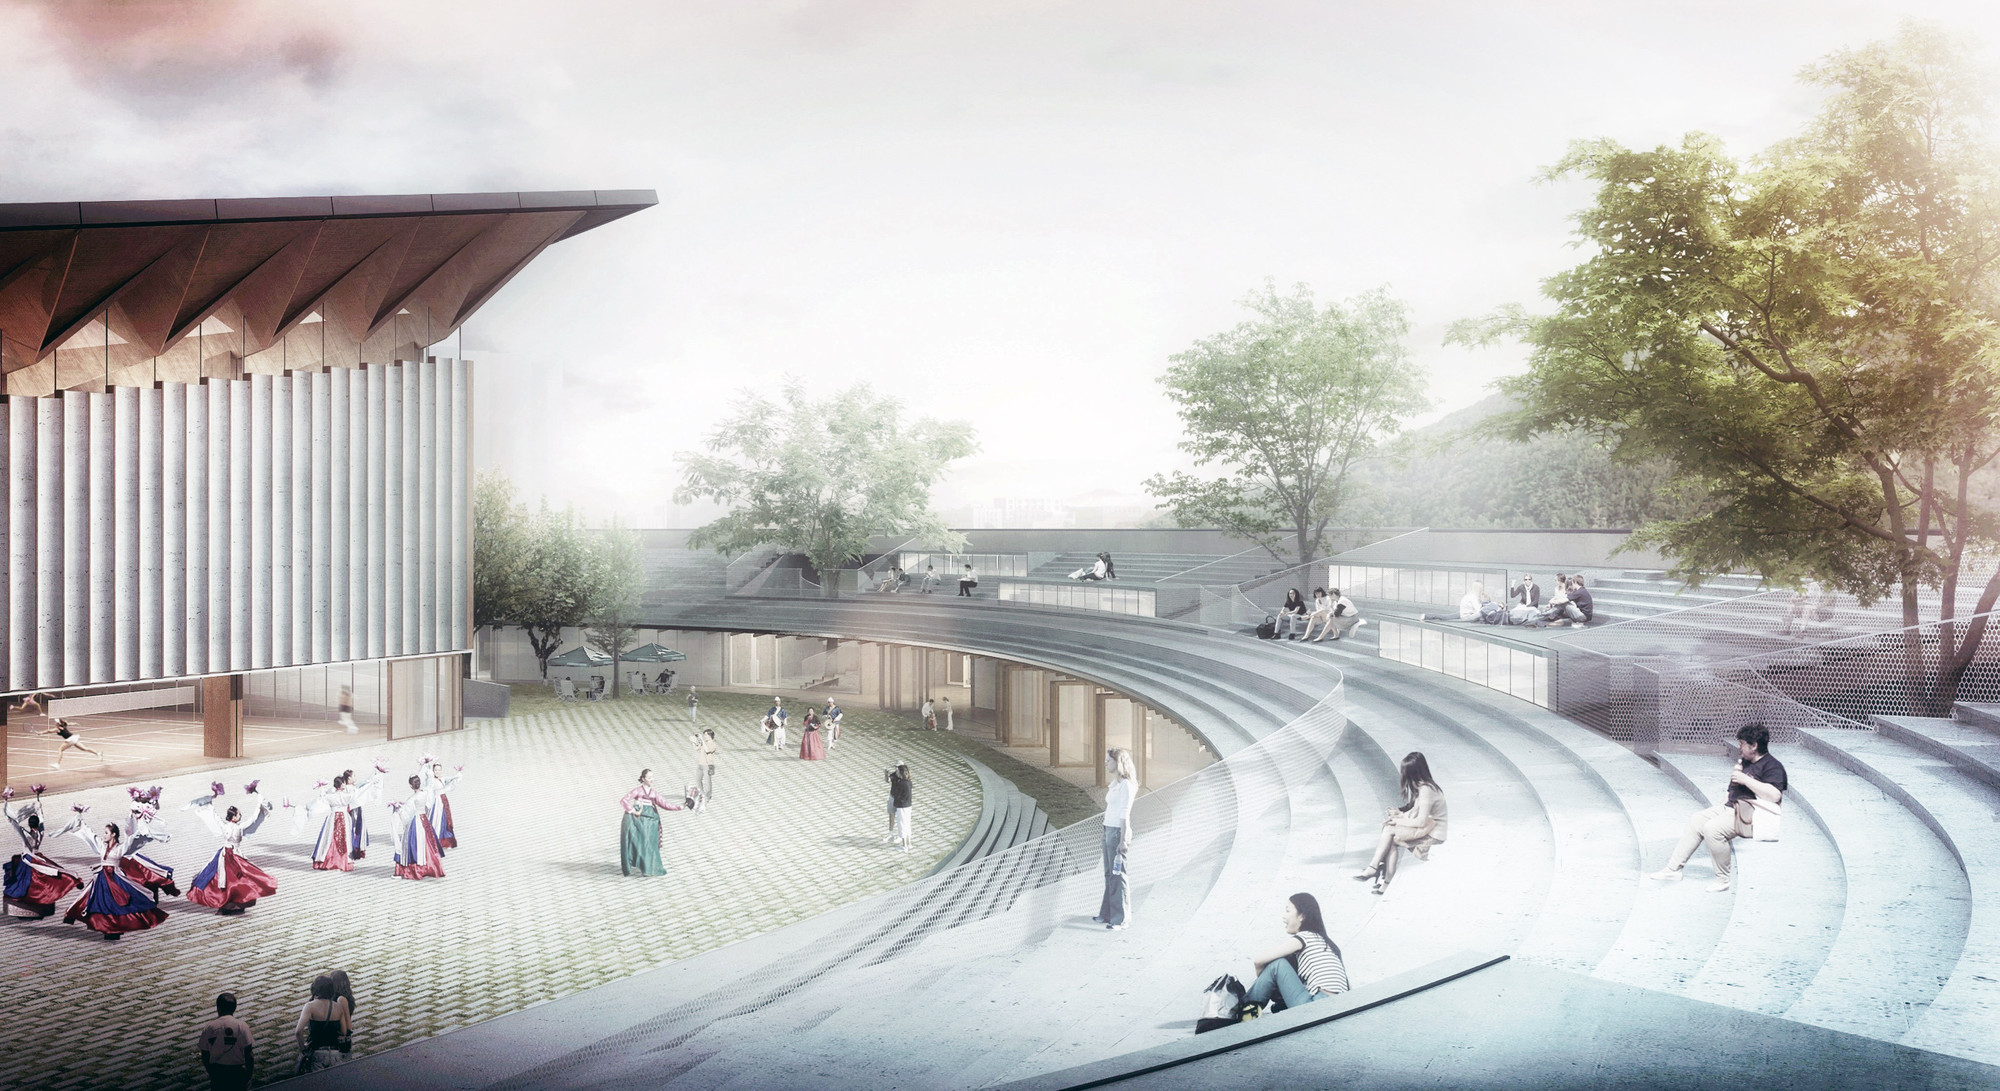 Competition entry noa s proposal for dalseong citizen 39 s for Schule design